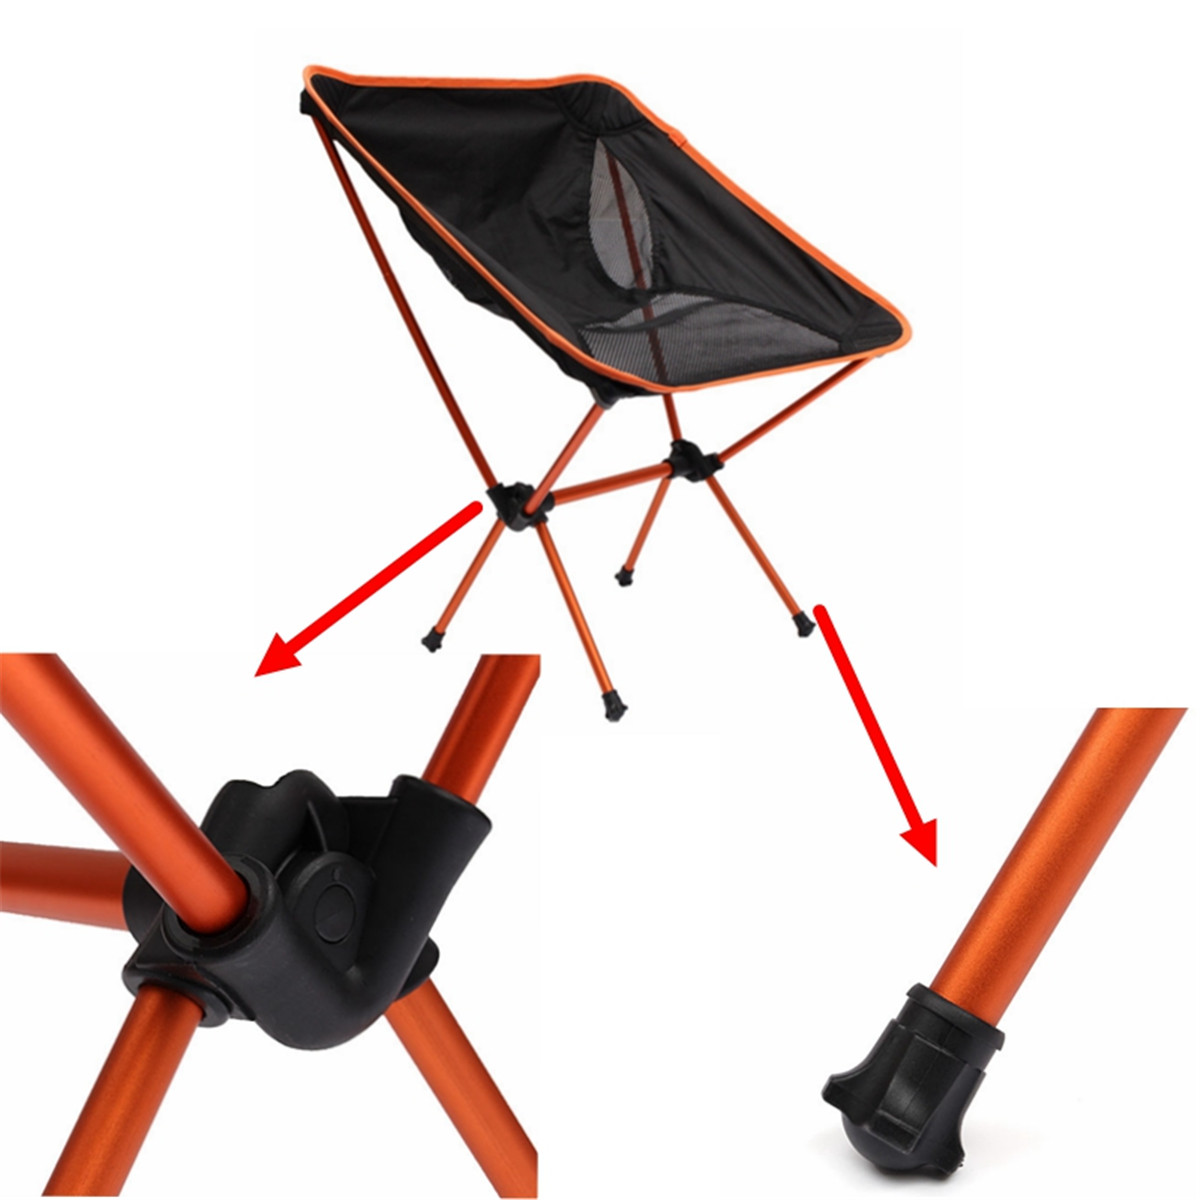 fishing chair singapore twin bed sleeper folding camping with bag orange export lazada